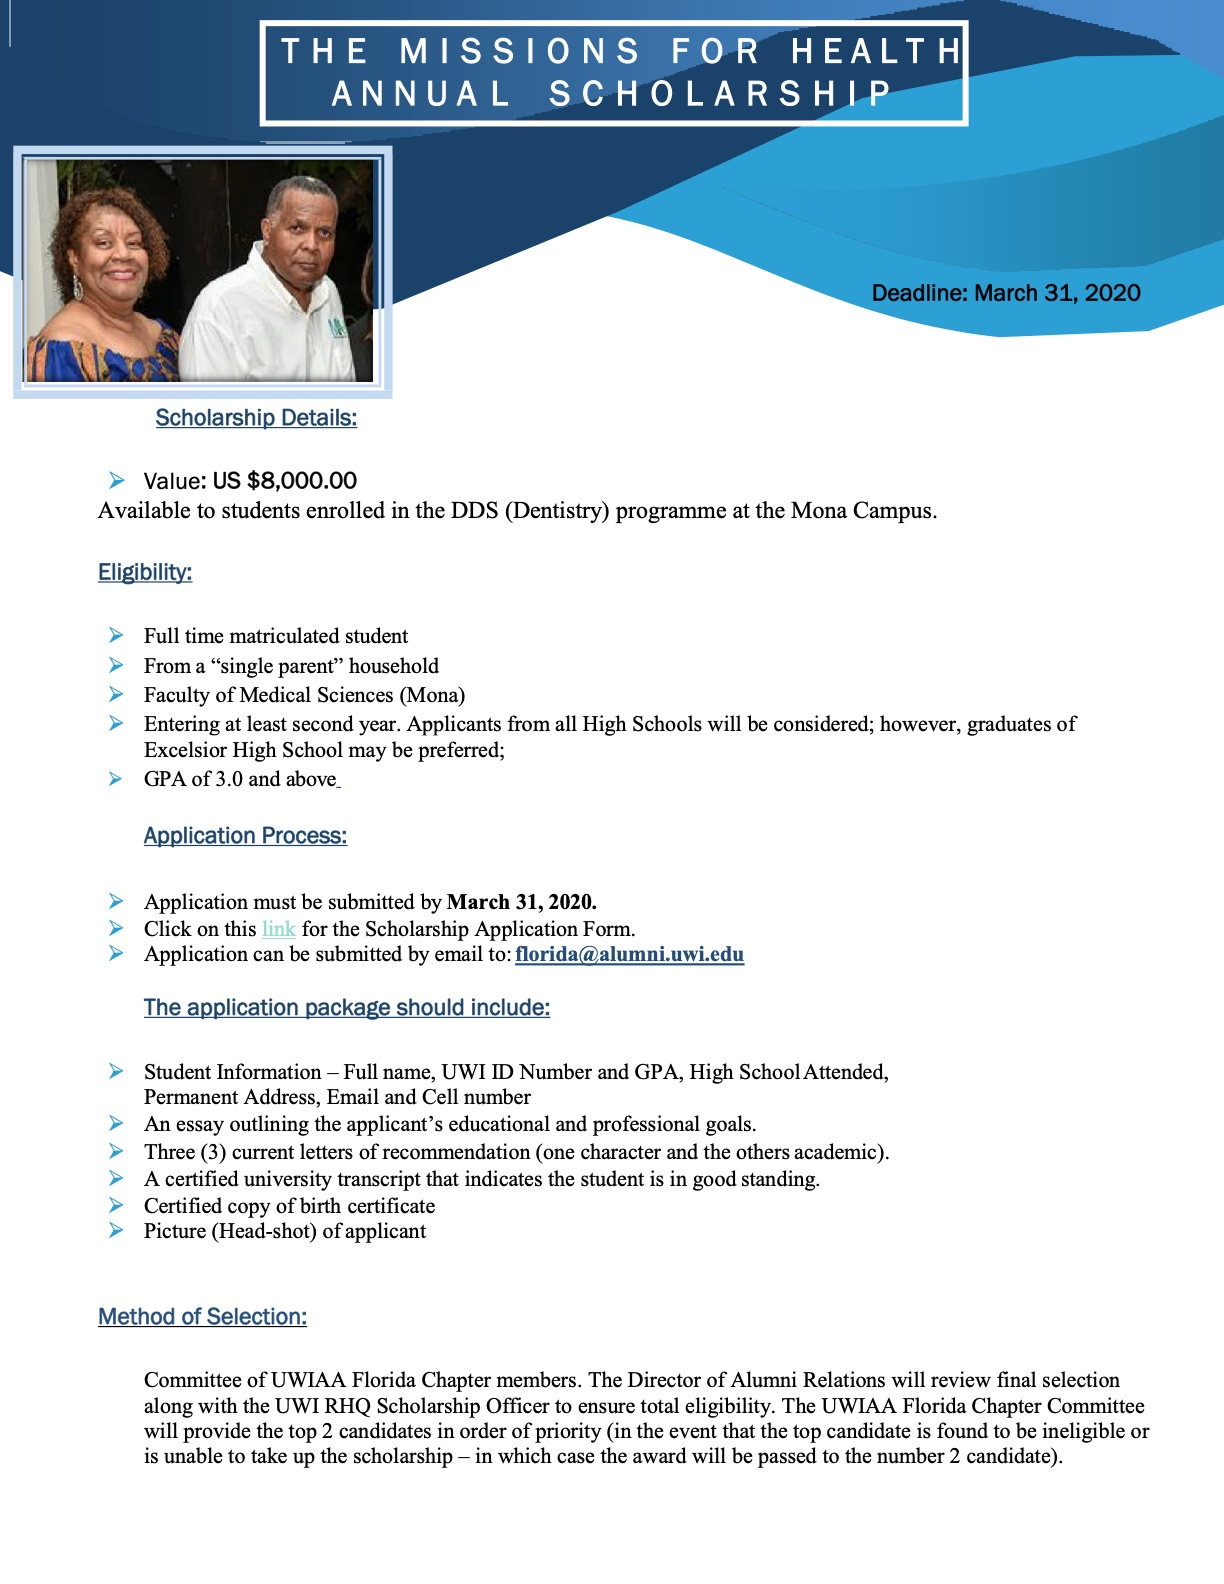 2020 Missions for Health Annual Scholarship